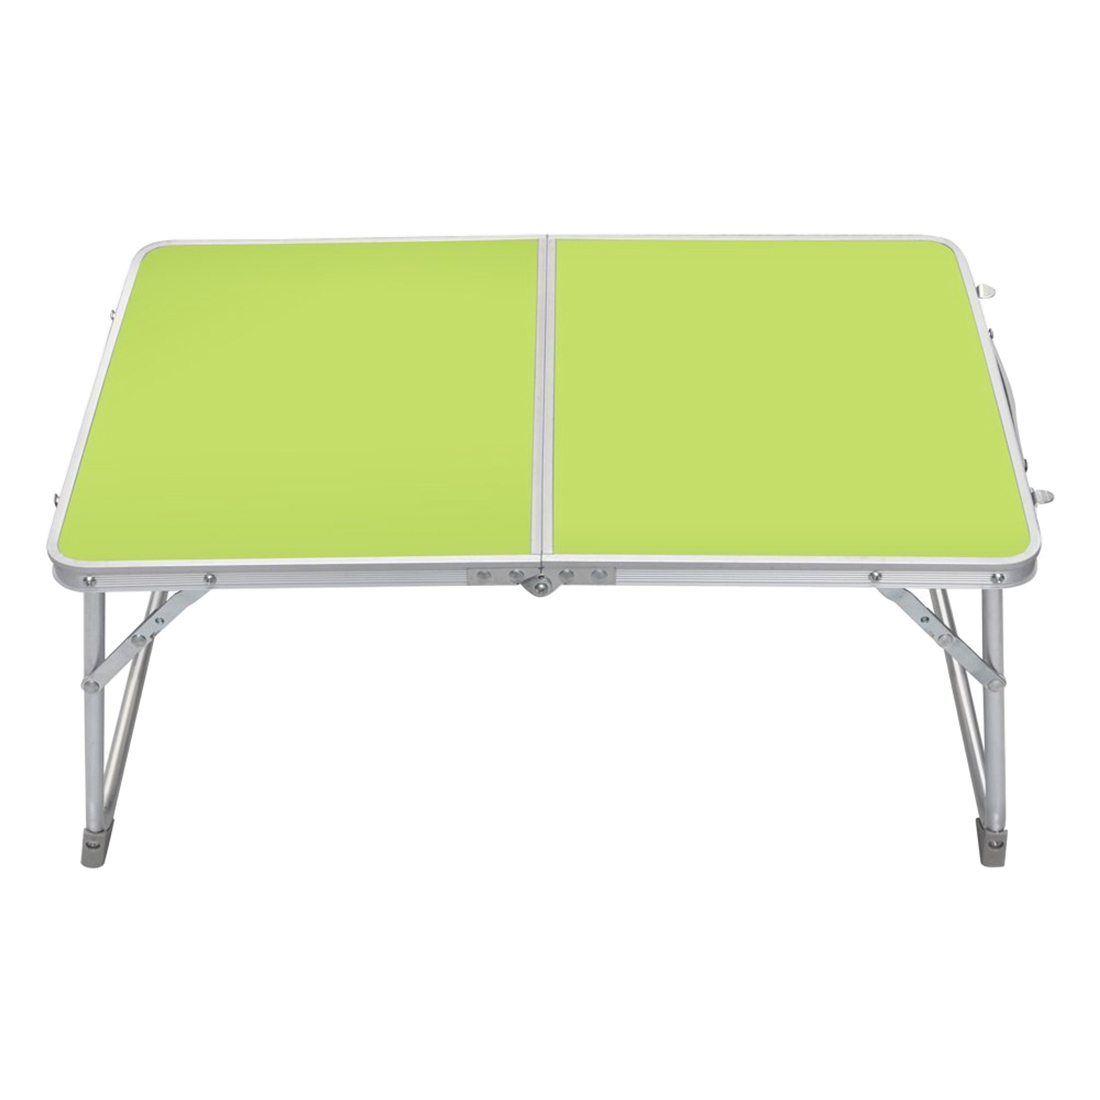 Small 62x41x28cm/24.4x16.1x11 PC Laptop Table Bed Desk Camping Picnic BBQ (Green)<br>